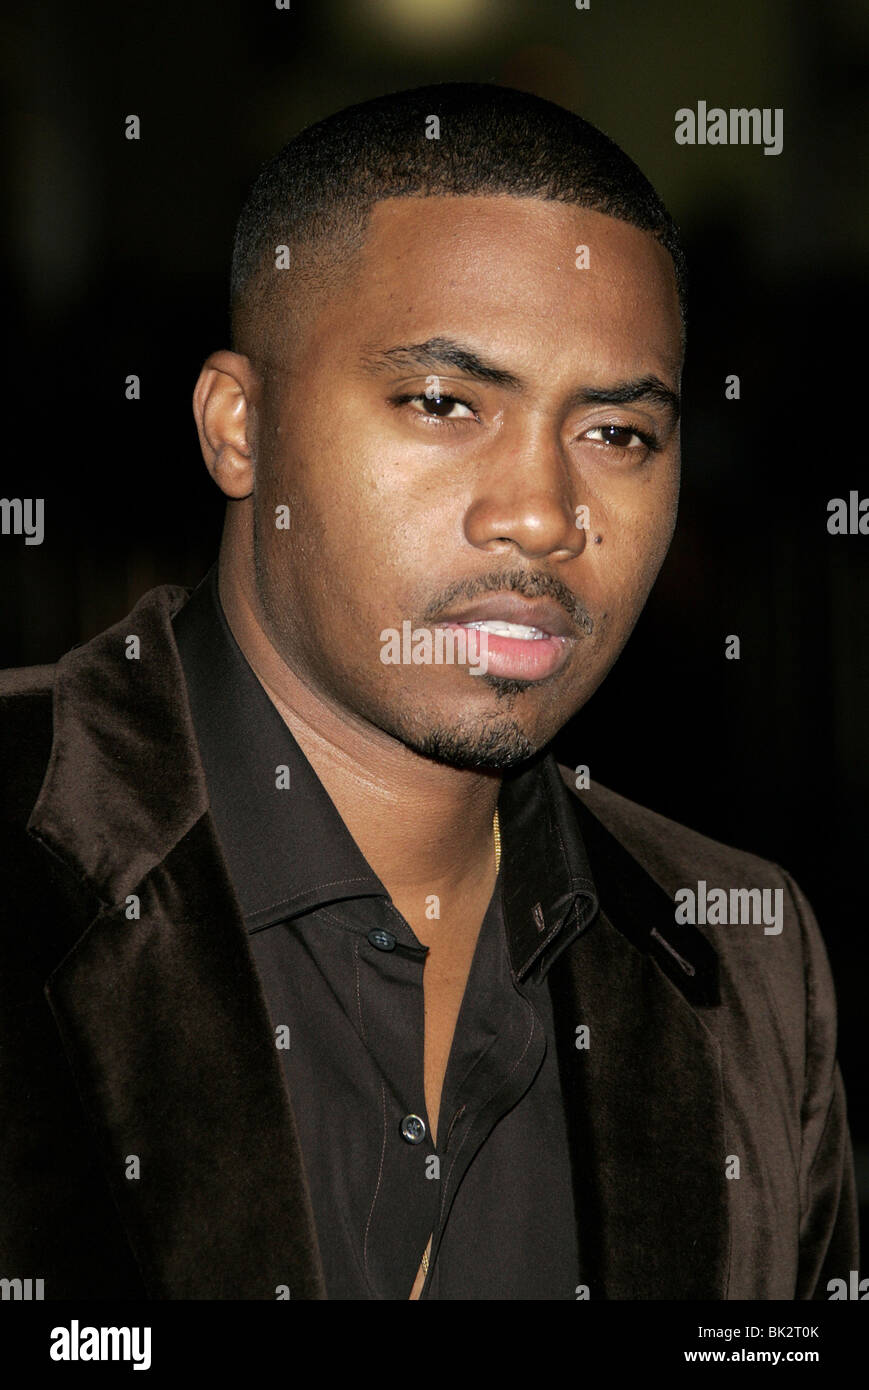 NAS BLOOD DIAMOND PREMIERE GRAUMAN'S CHINESE THEATRE HOLLYWOOD USA 06 December 2006 - Stock Image